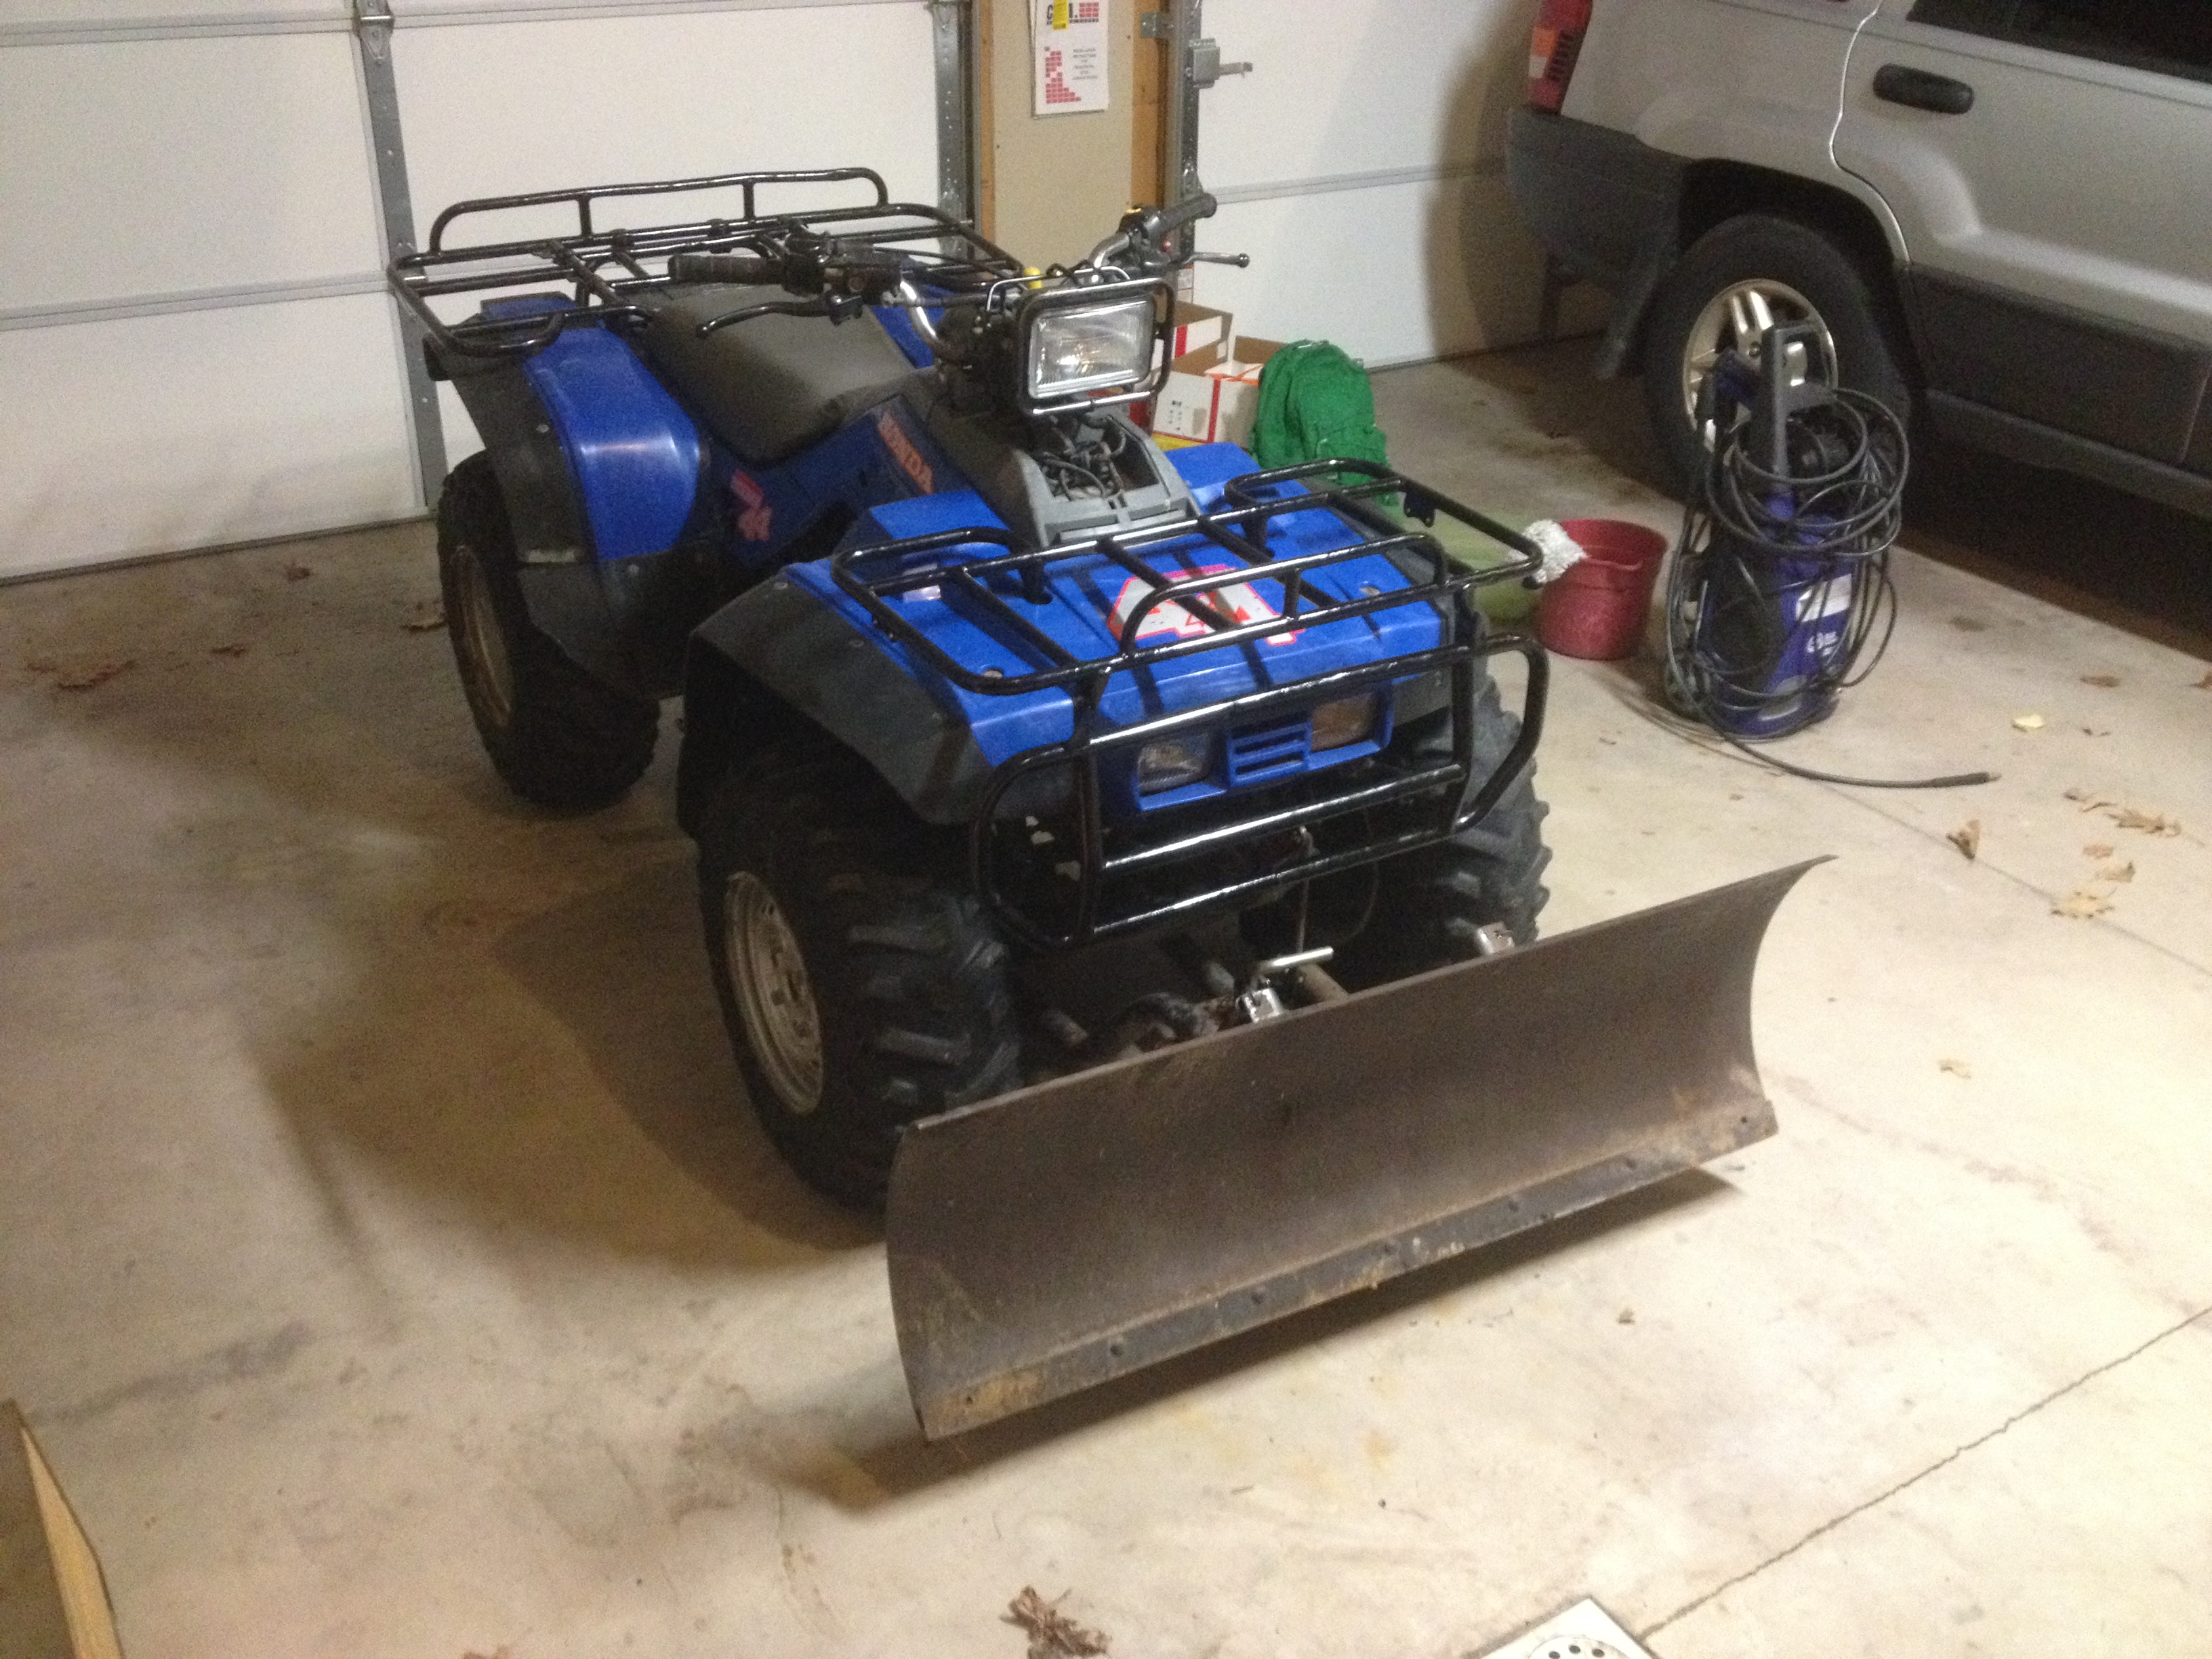 1987 TRX350D Fourtrax Foreman Starting Issues - Honda ATV Forum